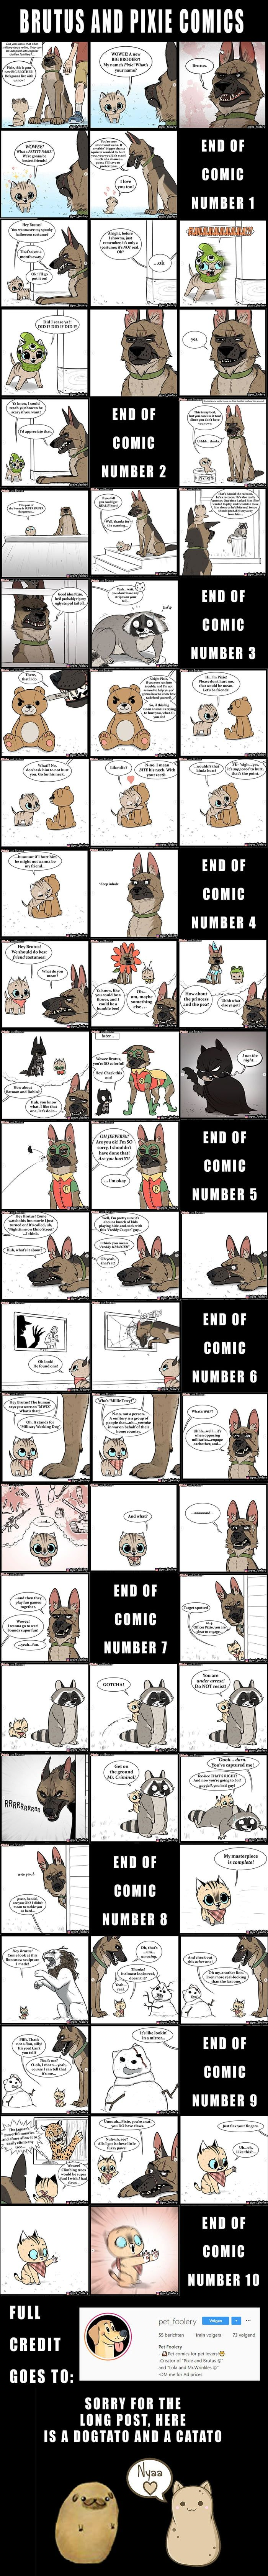 Brutus and Pixie all comics (all credit score to Pet_Foolery in Instagram). Since many 9gaggers do not appear to have Instagram I believed it will be a good suggestion to show all these comics into one image.